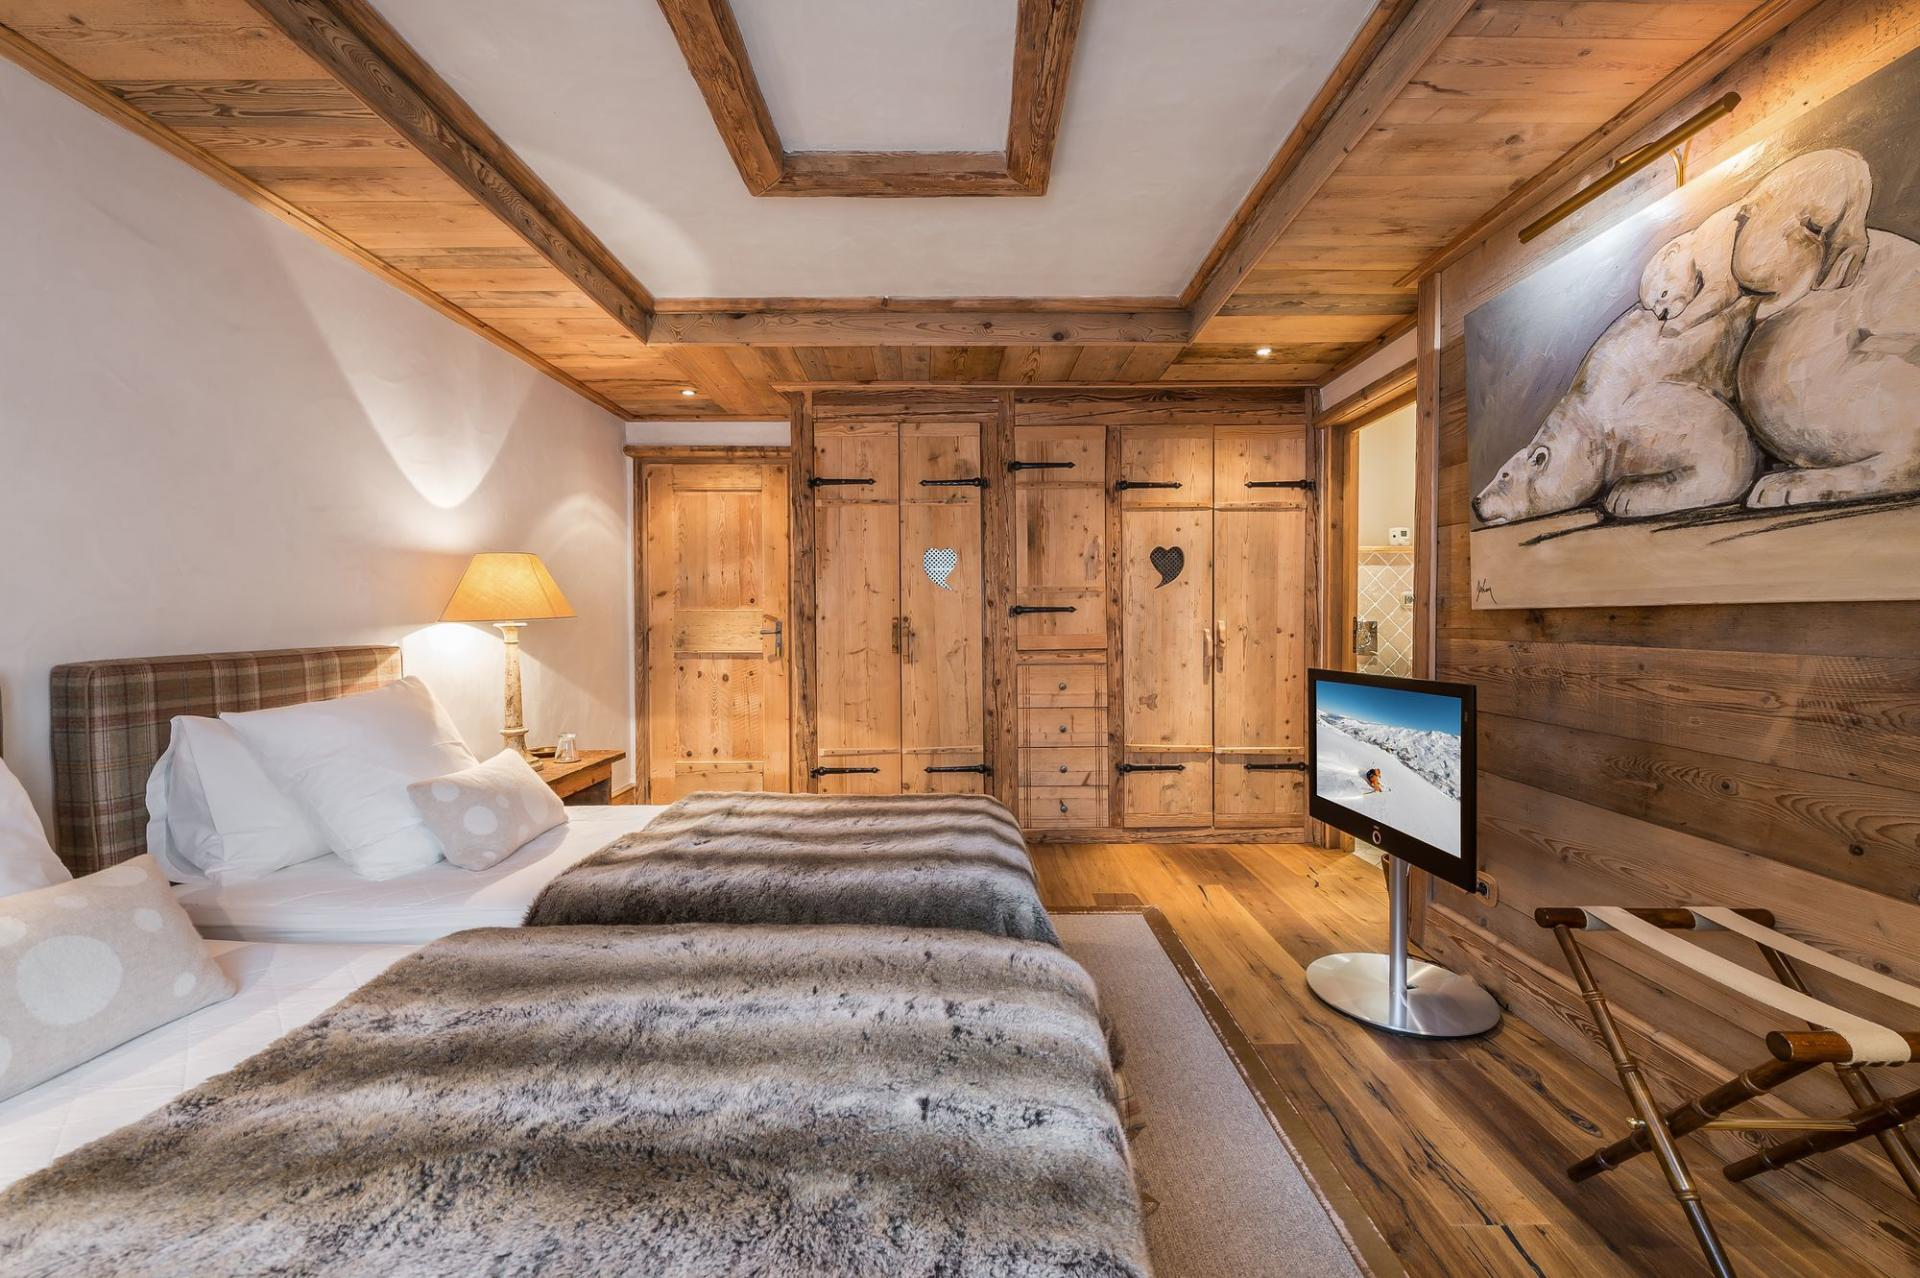 ANOTHER BEDROOM IN CHALET BELLECOTE WITH TWIN BEDS